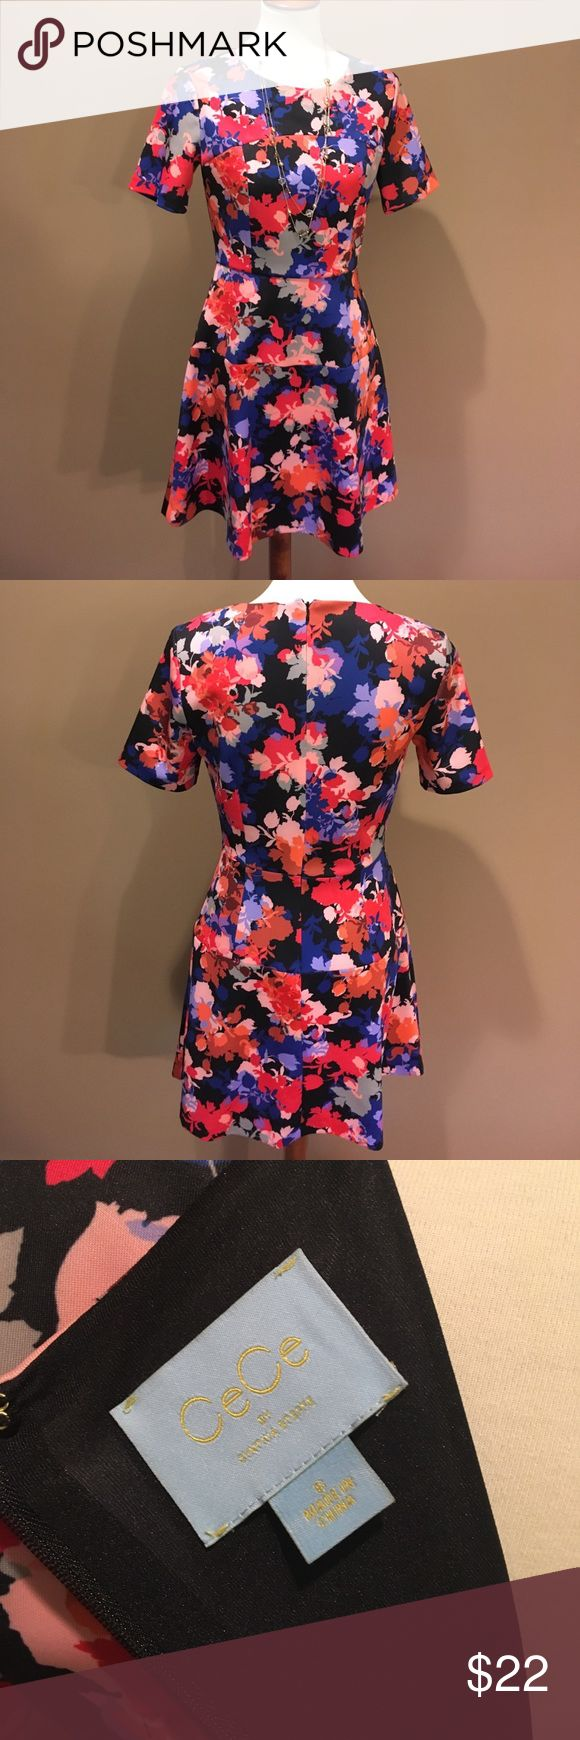 Floral CeCe Dress Fun floral print CeCe dress. Soft fabric with a little stretch. Cute with wedges or business dress shoes. CeCe Dresses